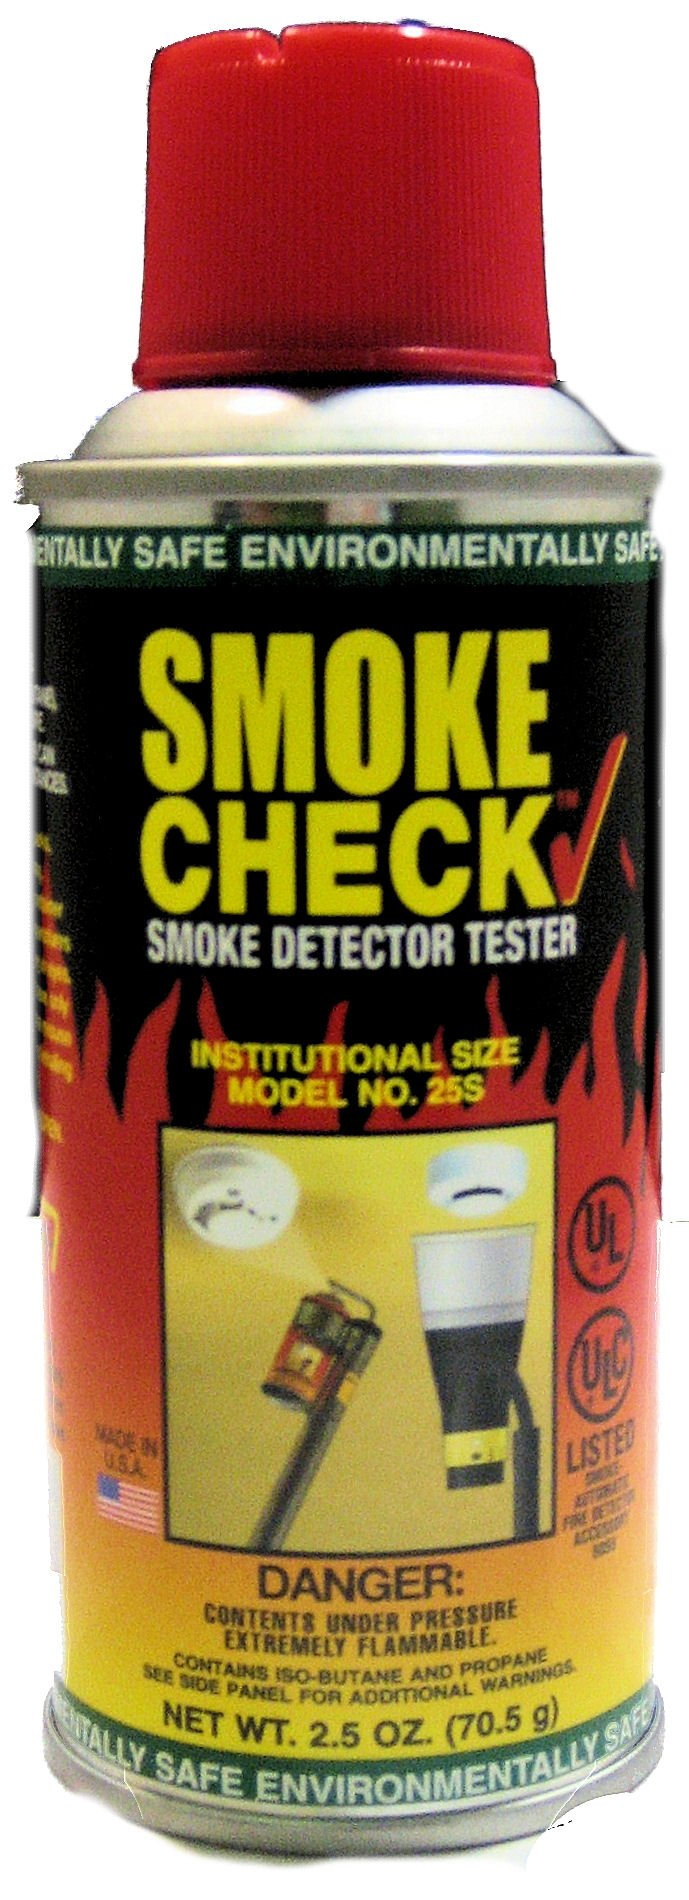 Home Safeguard 25S 2.5-Oz. Smoke Detector Tester Spray 12 Per Package by HSI Fire and Safety Group